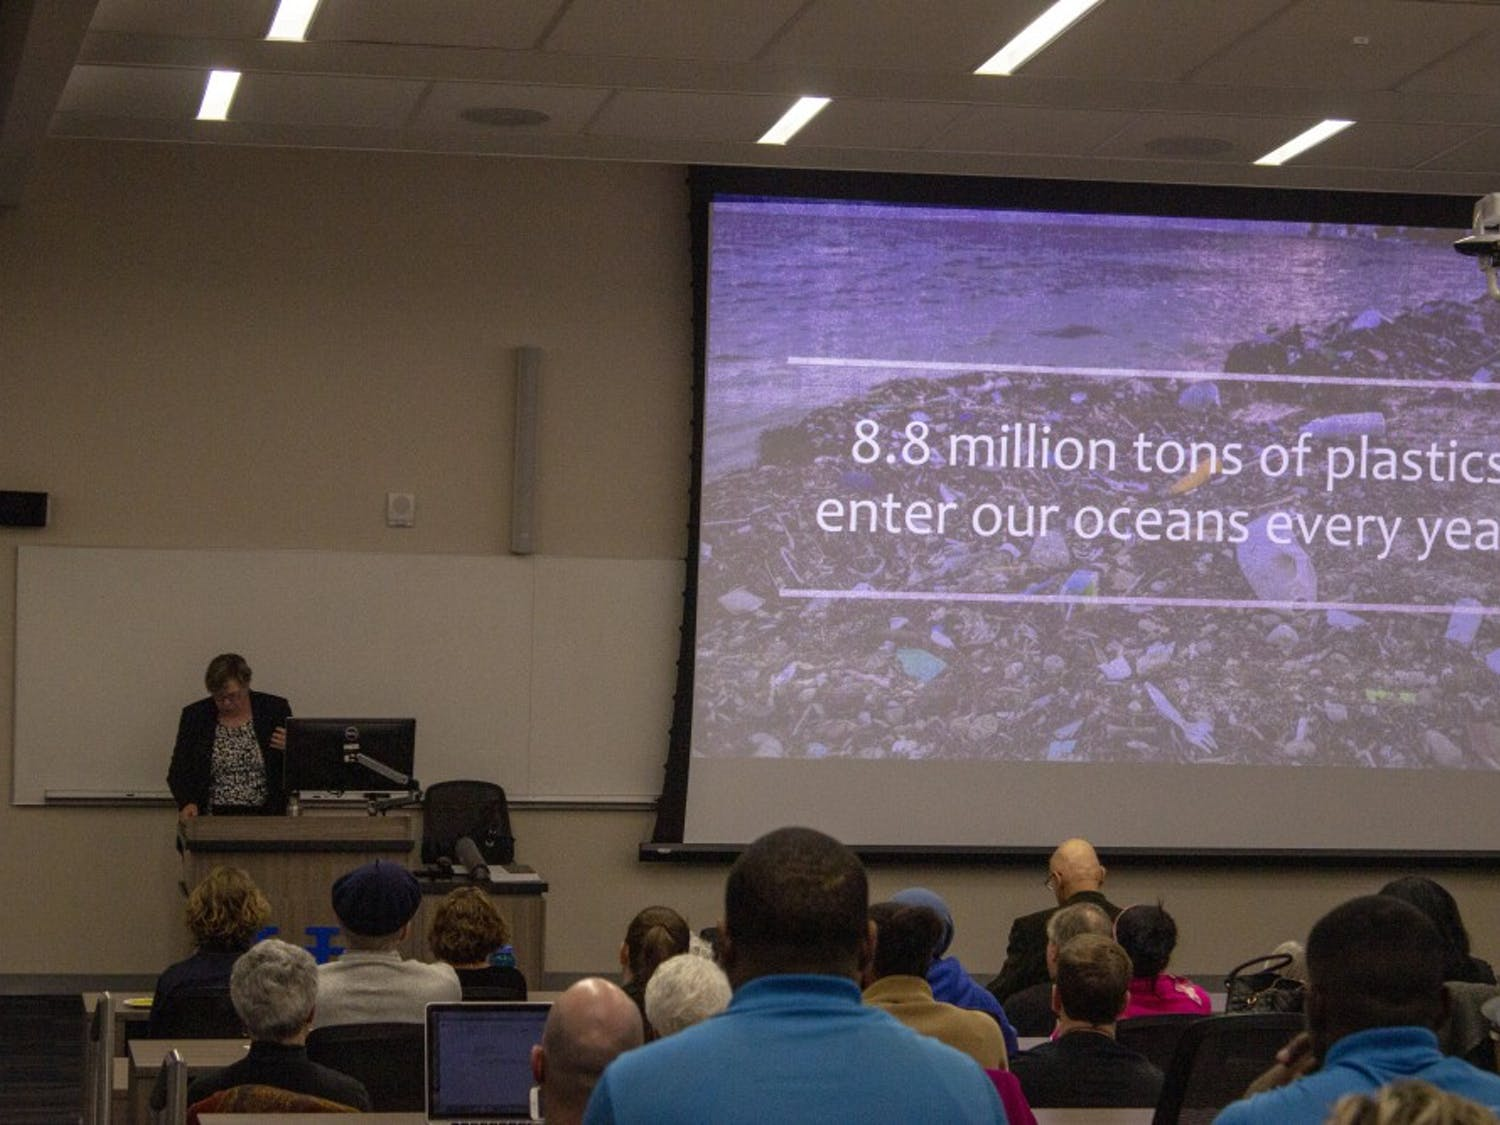 Judith Enck, a former Environmental Protection Agency regional administrator under the Obama administration, discusses the dangers of single-use plastics. Enck visited UB to discuss Beyond Plastics, a program which aims to reduce plastic pollution.